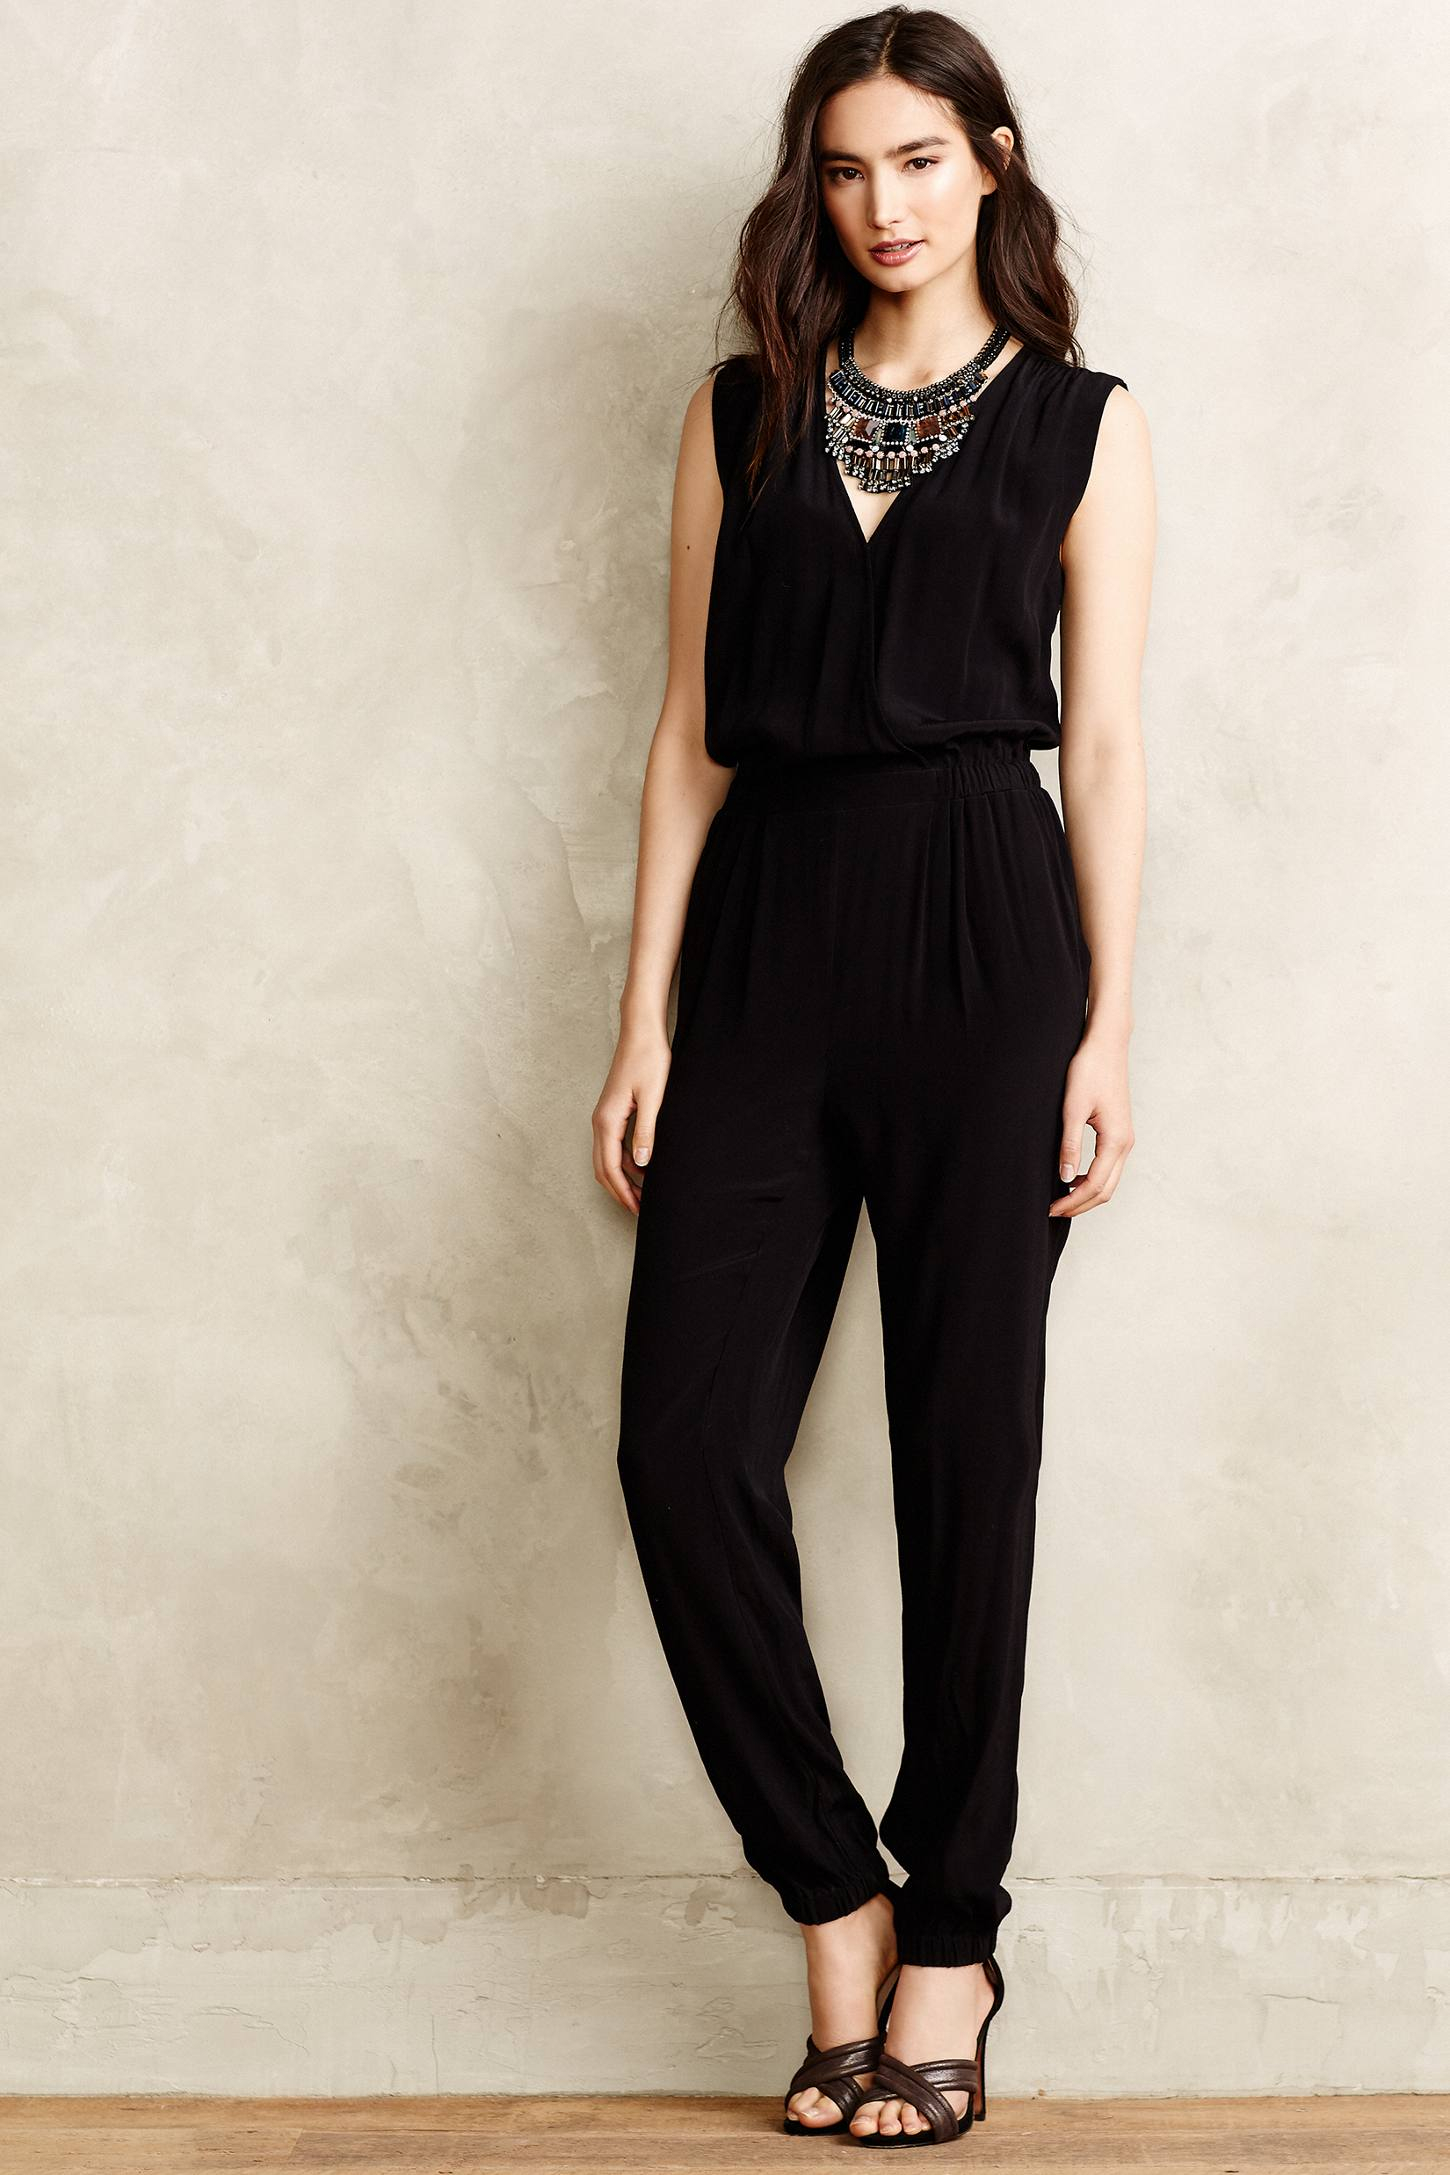 Cynthia Vincent Michelia Petite Jumpsuit In Black Lyst